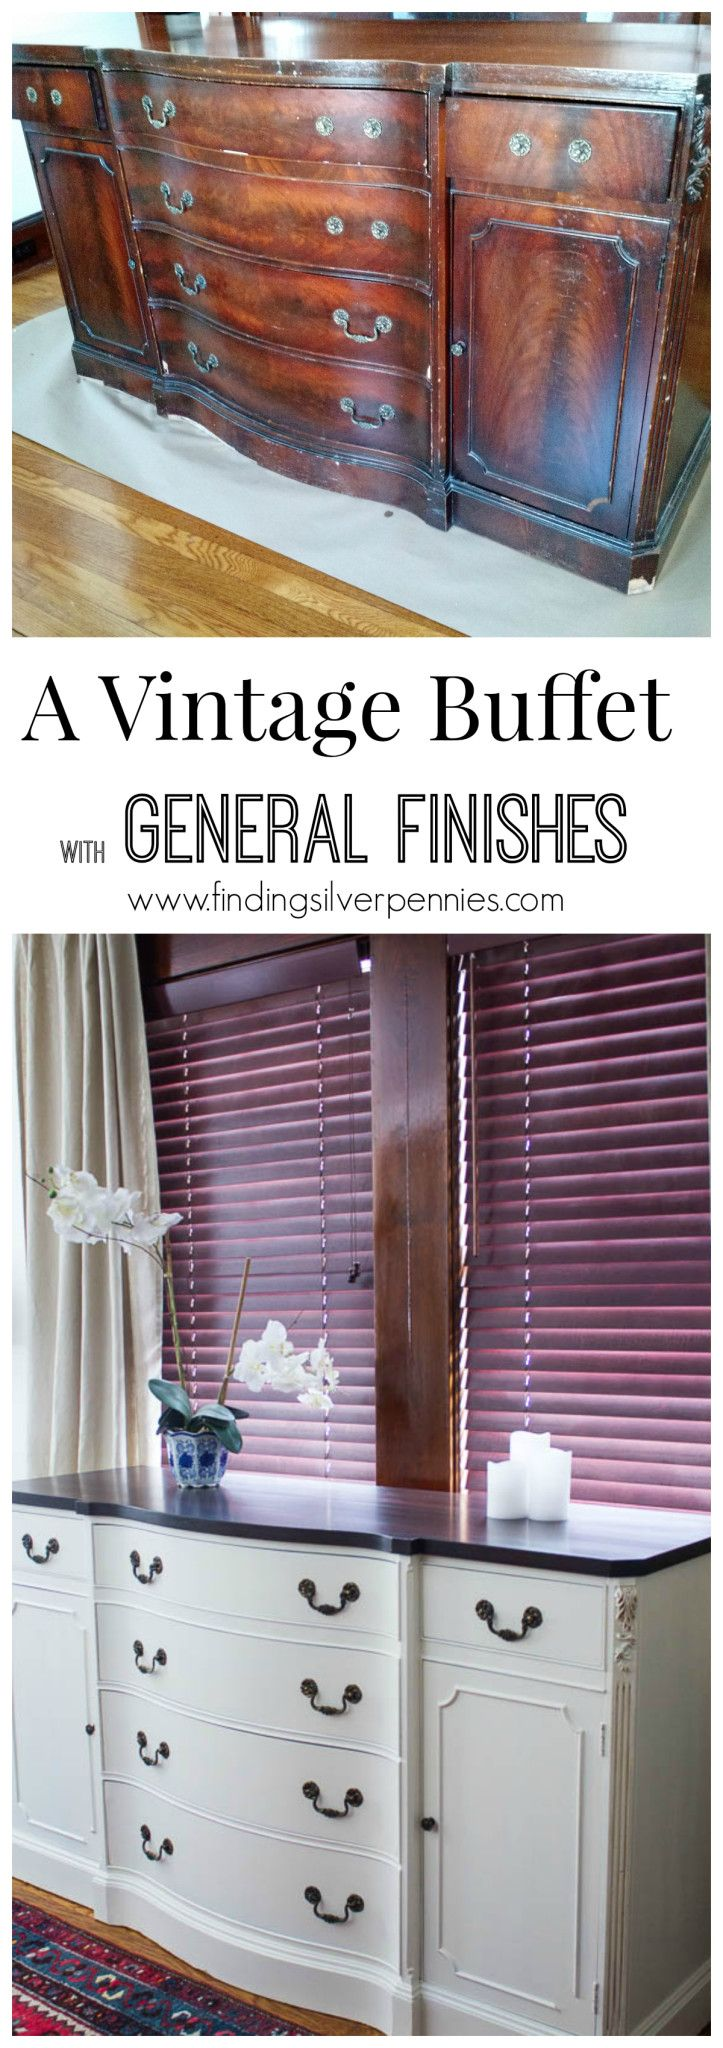 diy furniture refinishing projects. best 25 refinished buffet ideas on pinterest painted refinish table top and black dressers diy furniture refinishing projects